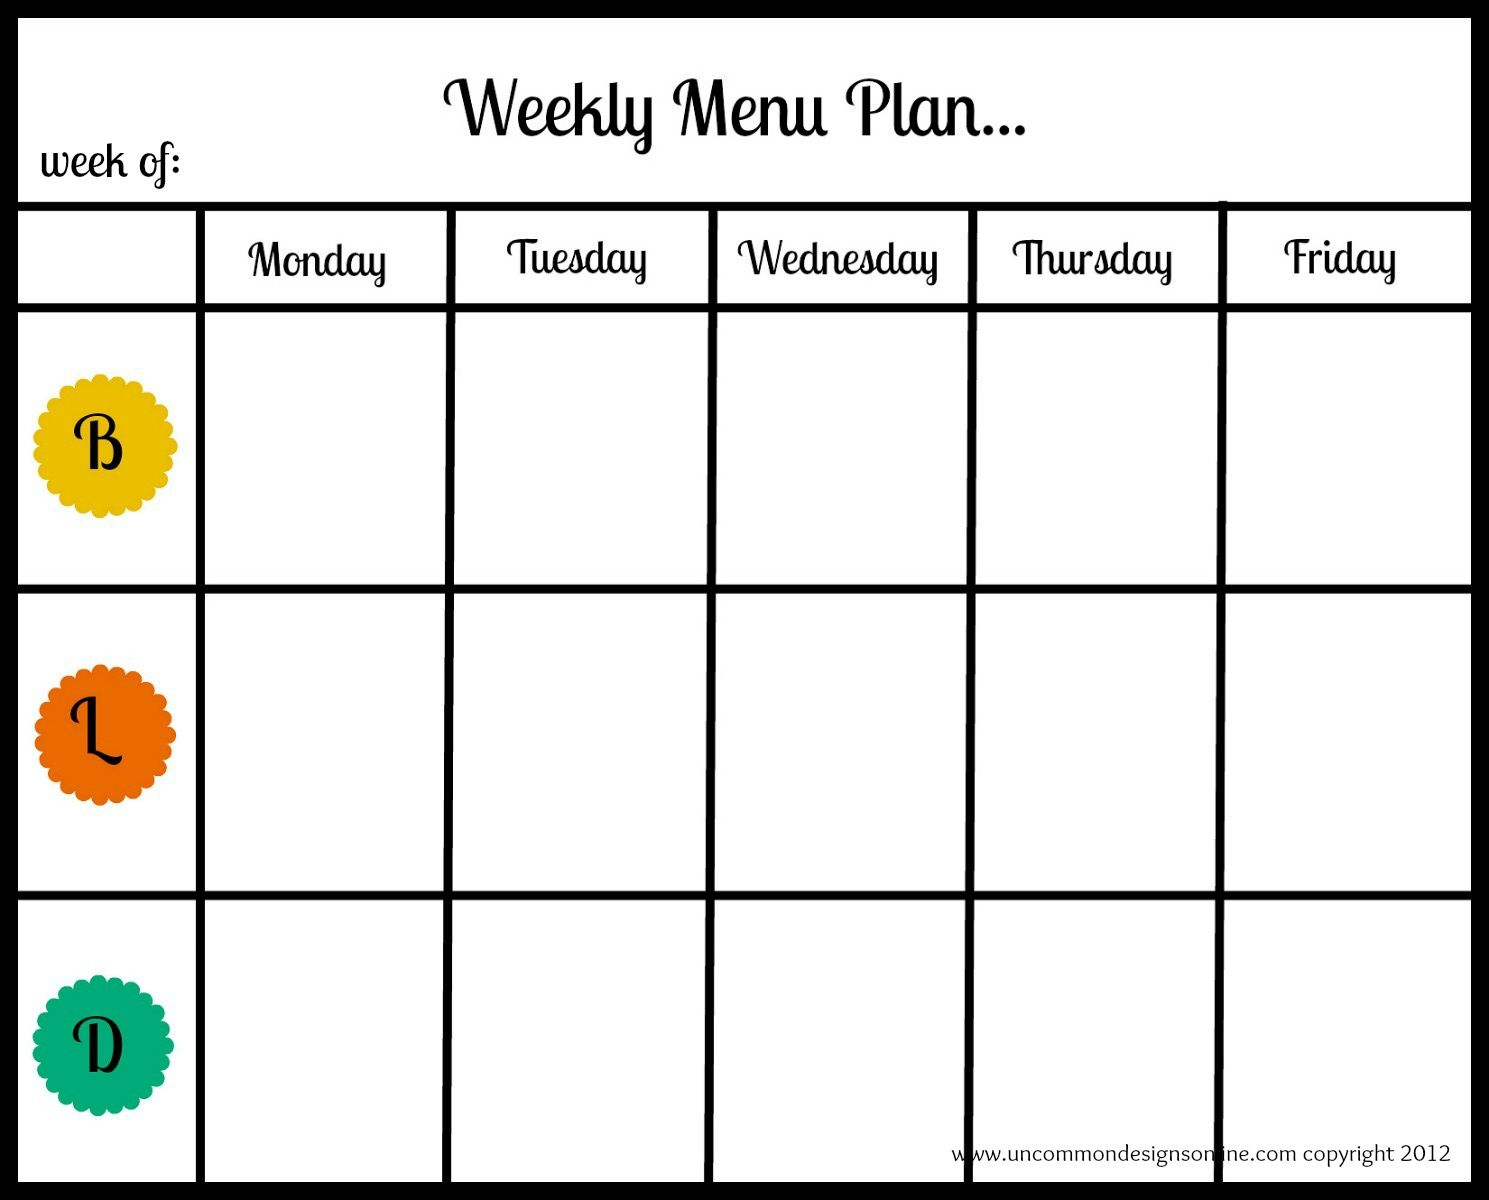 Meal Planning Printables And Tips  Menu Planning Printable Menu